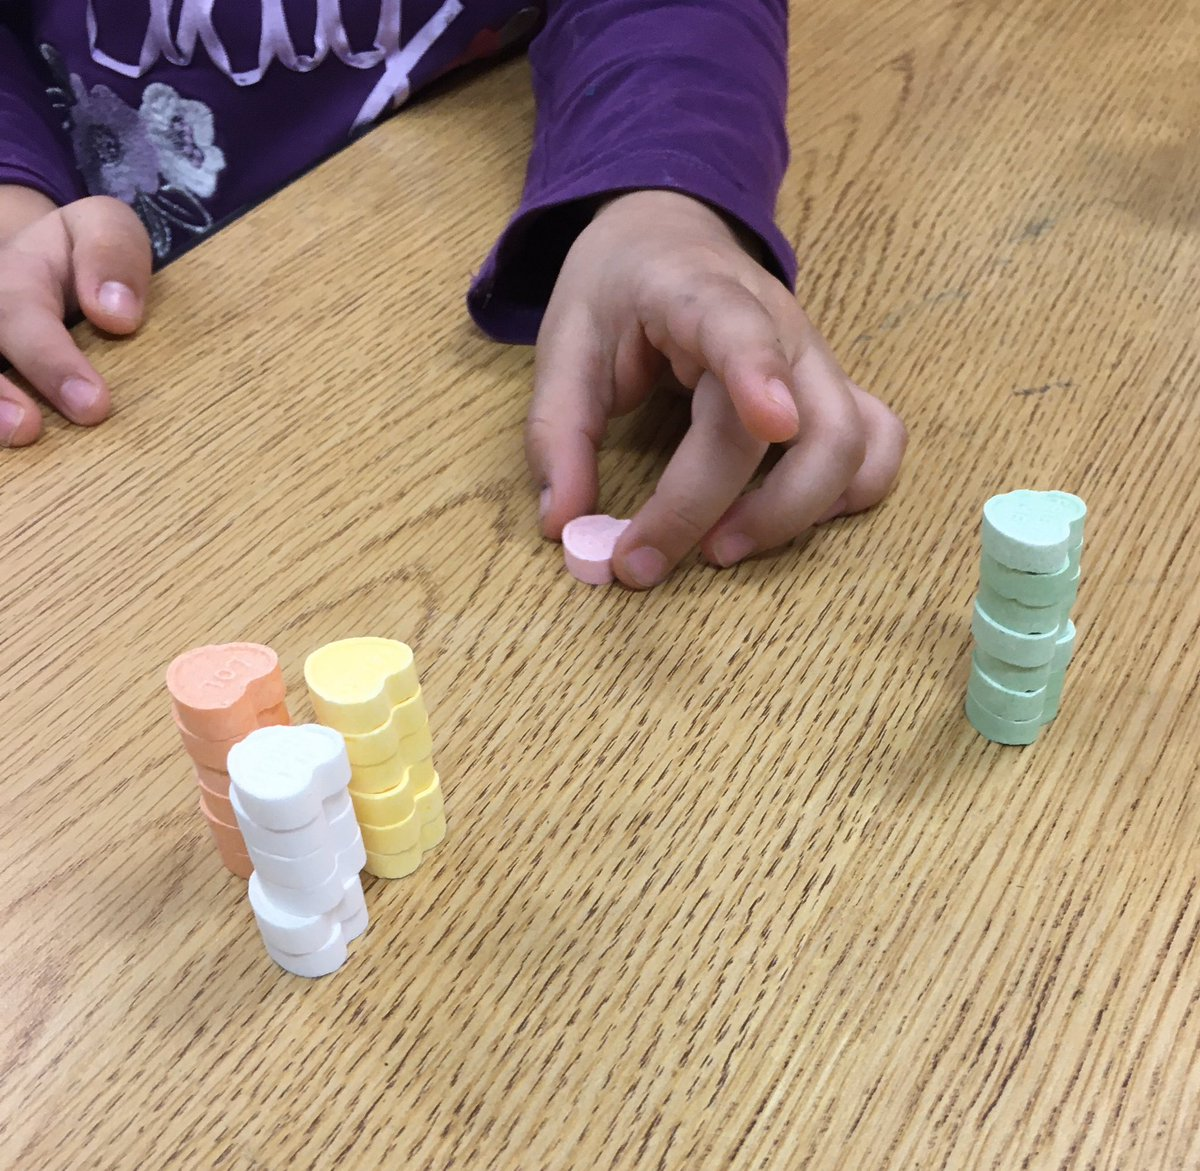 Candy hearts! Sorting, counting, stacking, comparing, patterning, dissolving and tasting! <a target='_blank' href='https://t.co/O8q7EUYB3J'>https://t.co/O8q7EUYB3J</a>